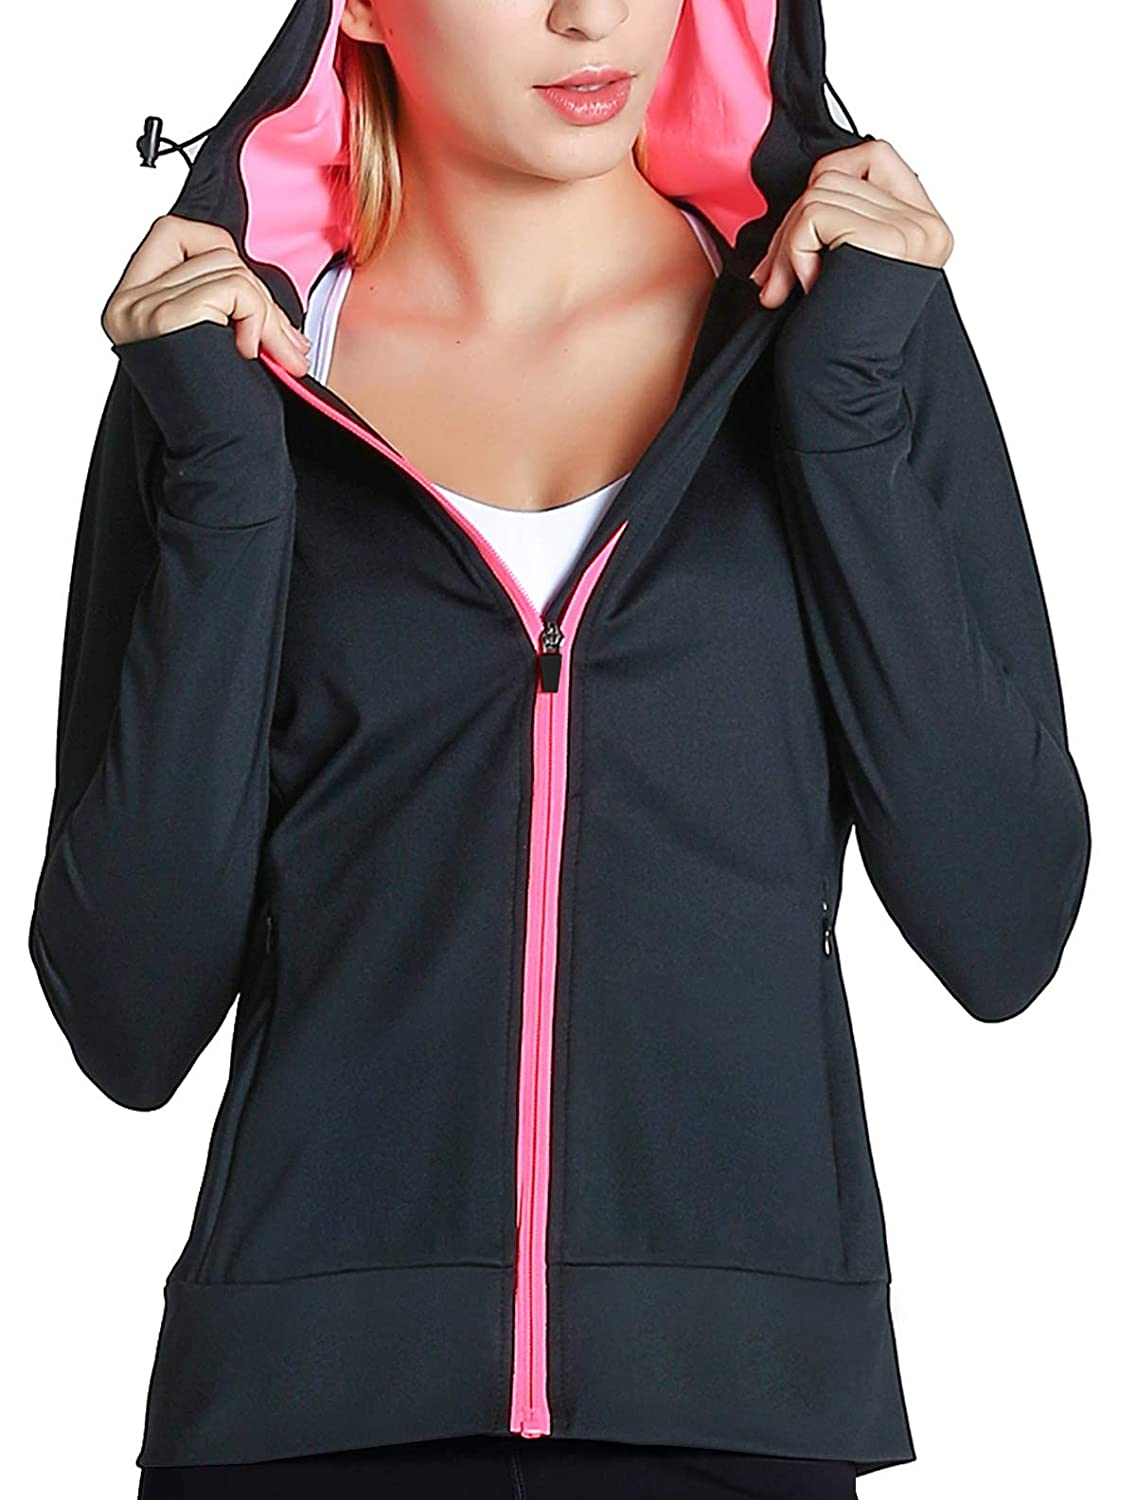 Fastorm Womens Full Zip Athletic Jacket Hoodie Activewear Workout Sweatshirt Track Jackets with Thumb Holes Ht-JK017